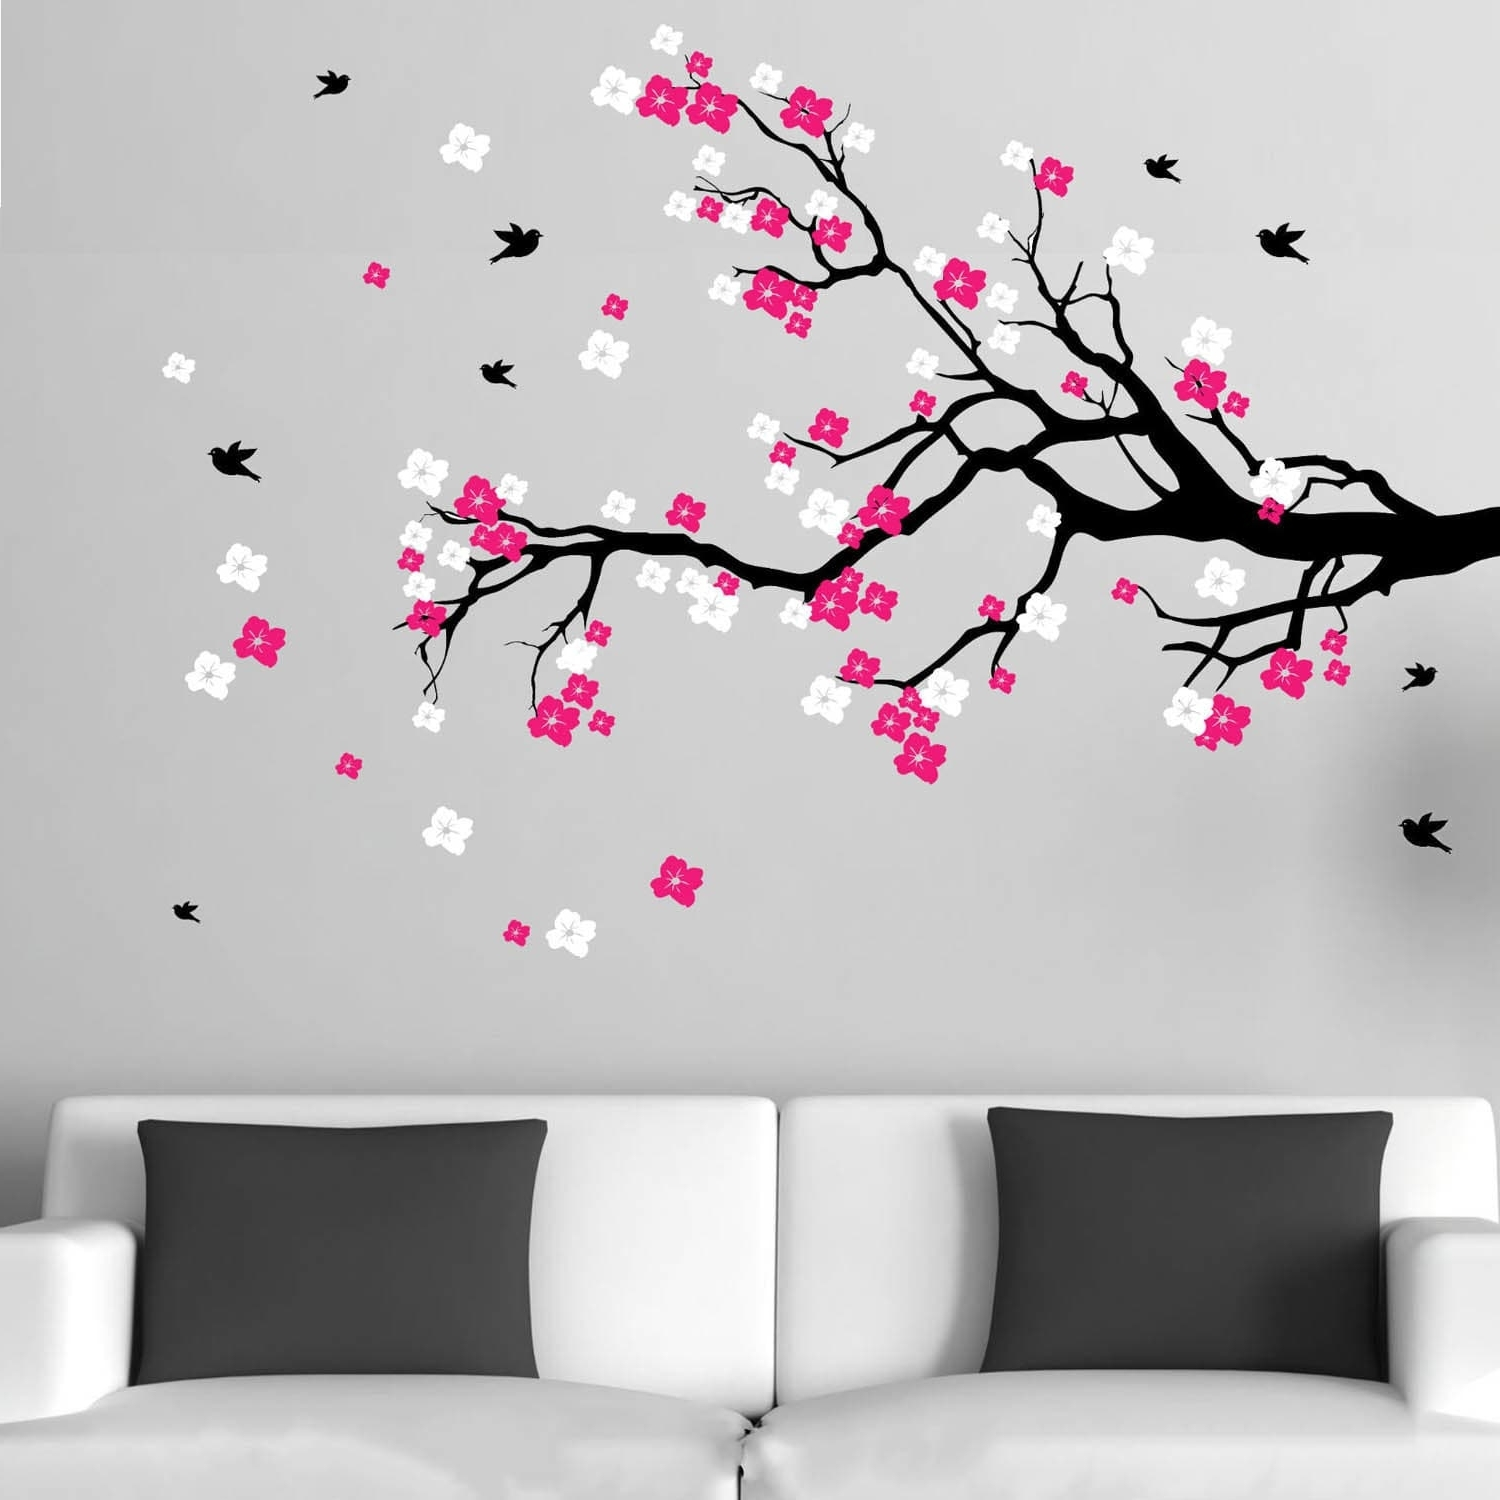 Cherry Blossom Vinyl Wall Art Regarding Most Popular Cherry Blossom Branch With Birds Vinyl Wall Art Decal – Free (View 3 of 15)